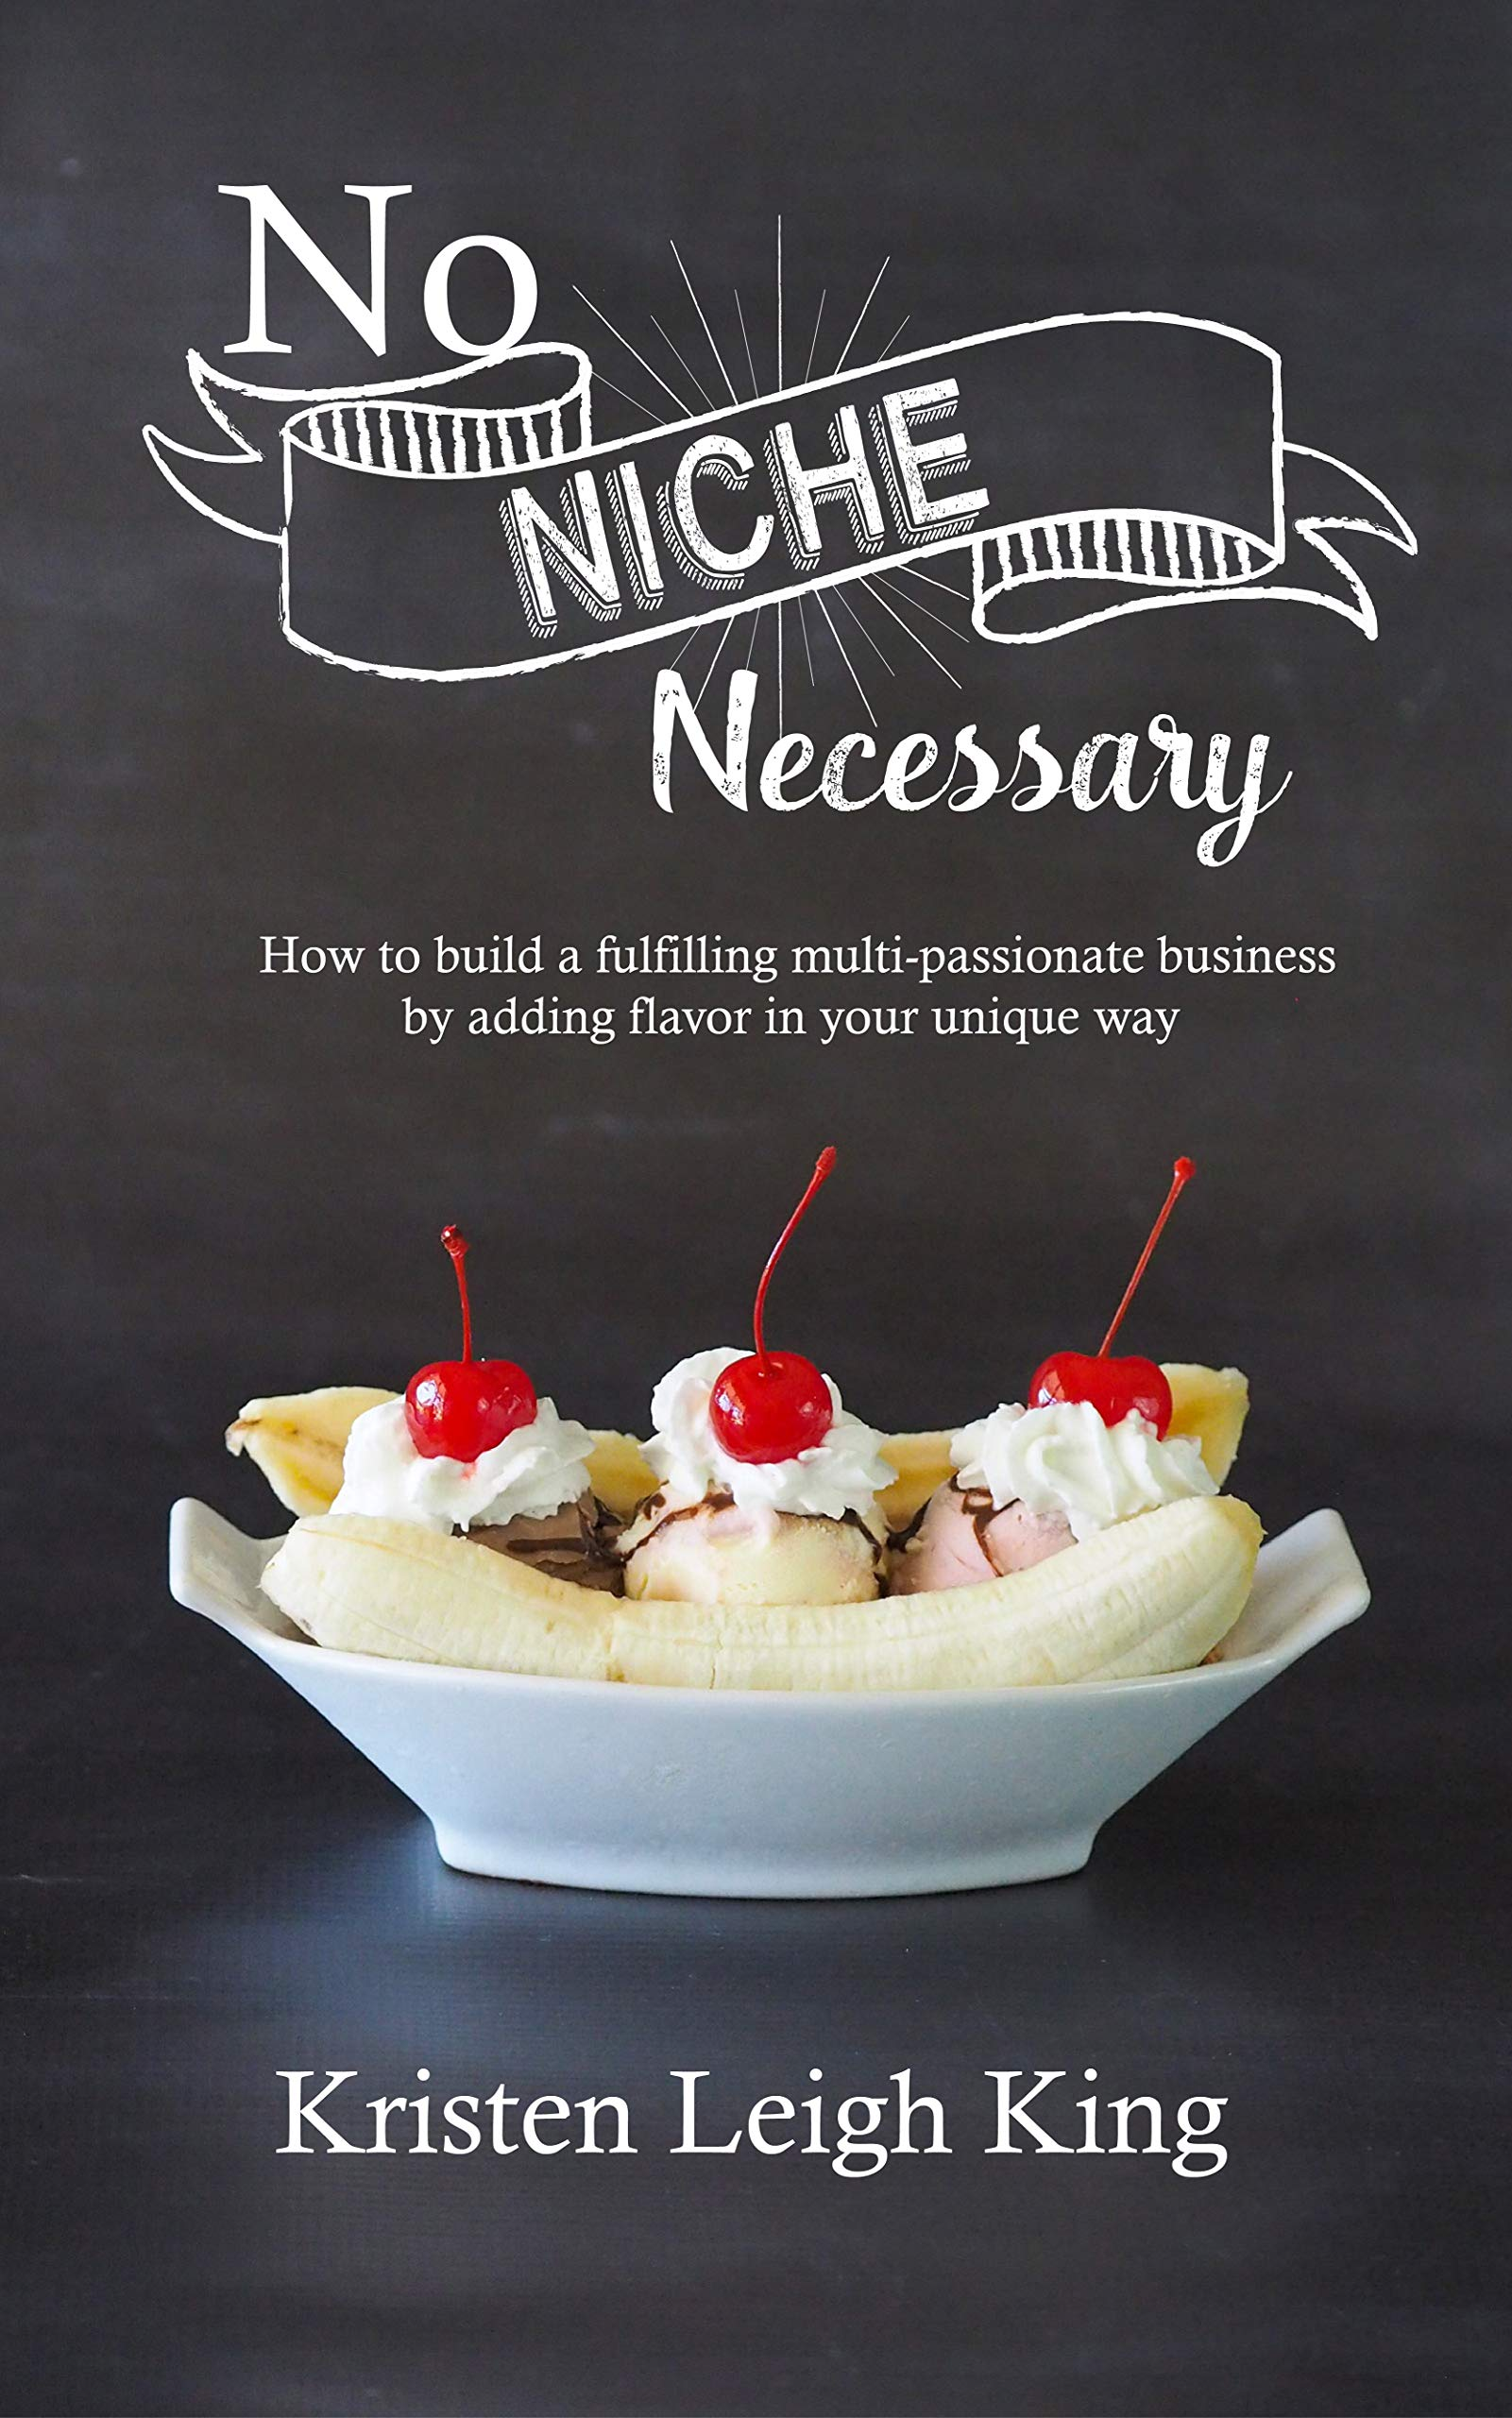 No Niche Necessary: How to build a fulfilling multi-passionate business by adding flavor in your unique way por Kristen Leigh King